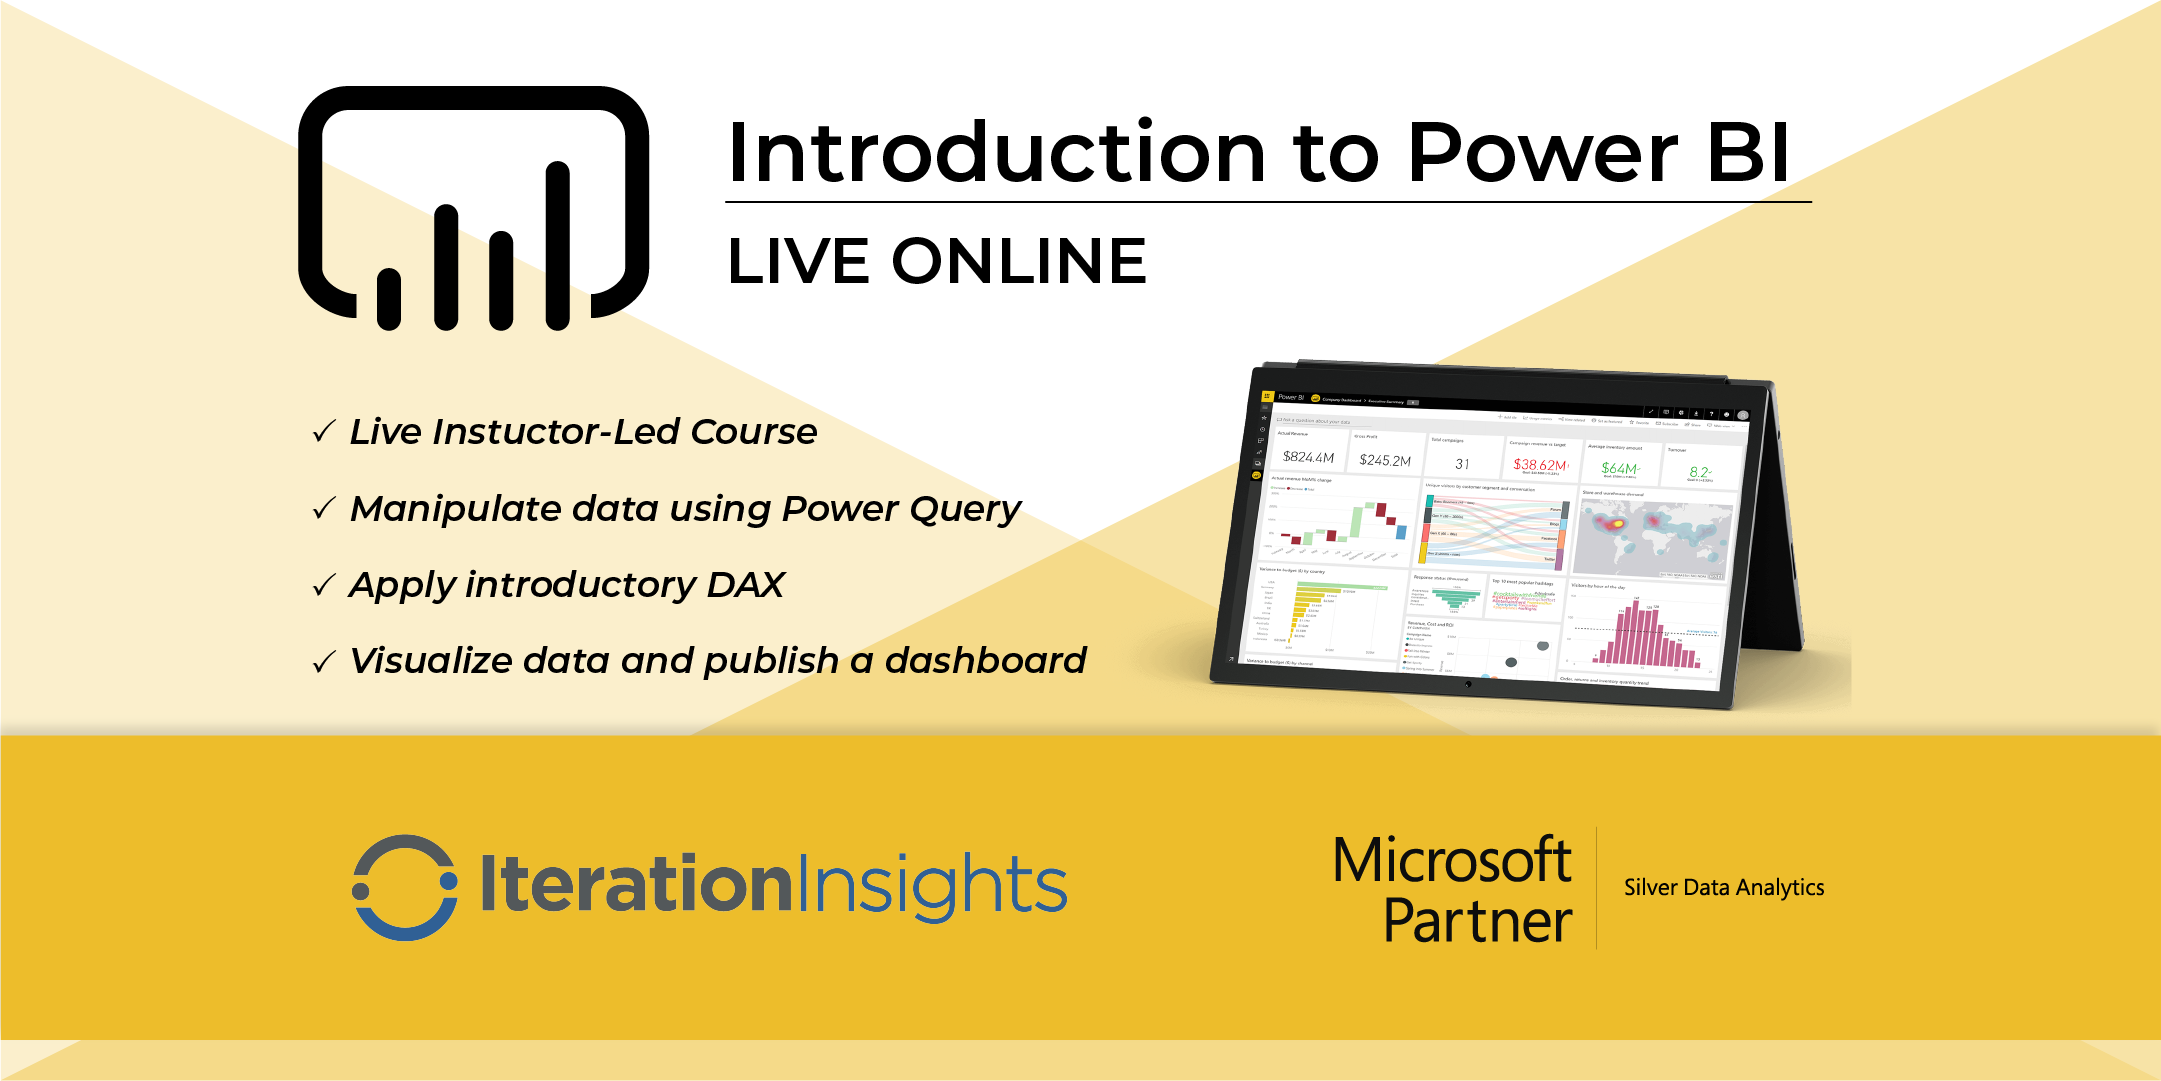 HANDS DOWN THE BEST Introduction to Power BI and DAX - Virtual Edmonton 2 Day